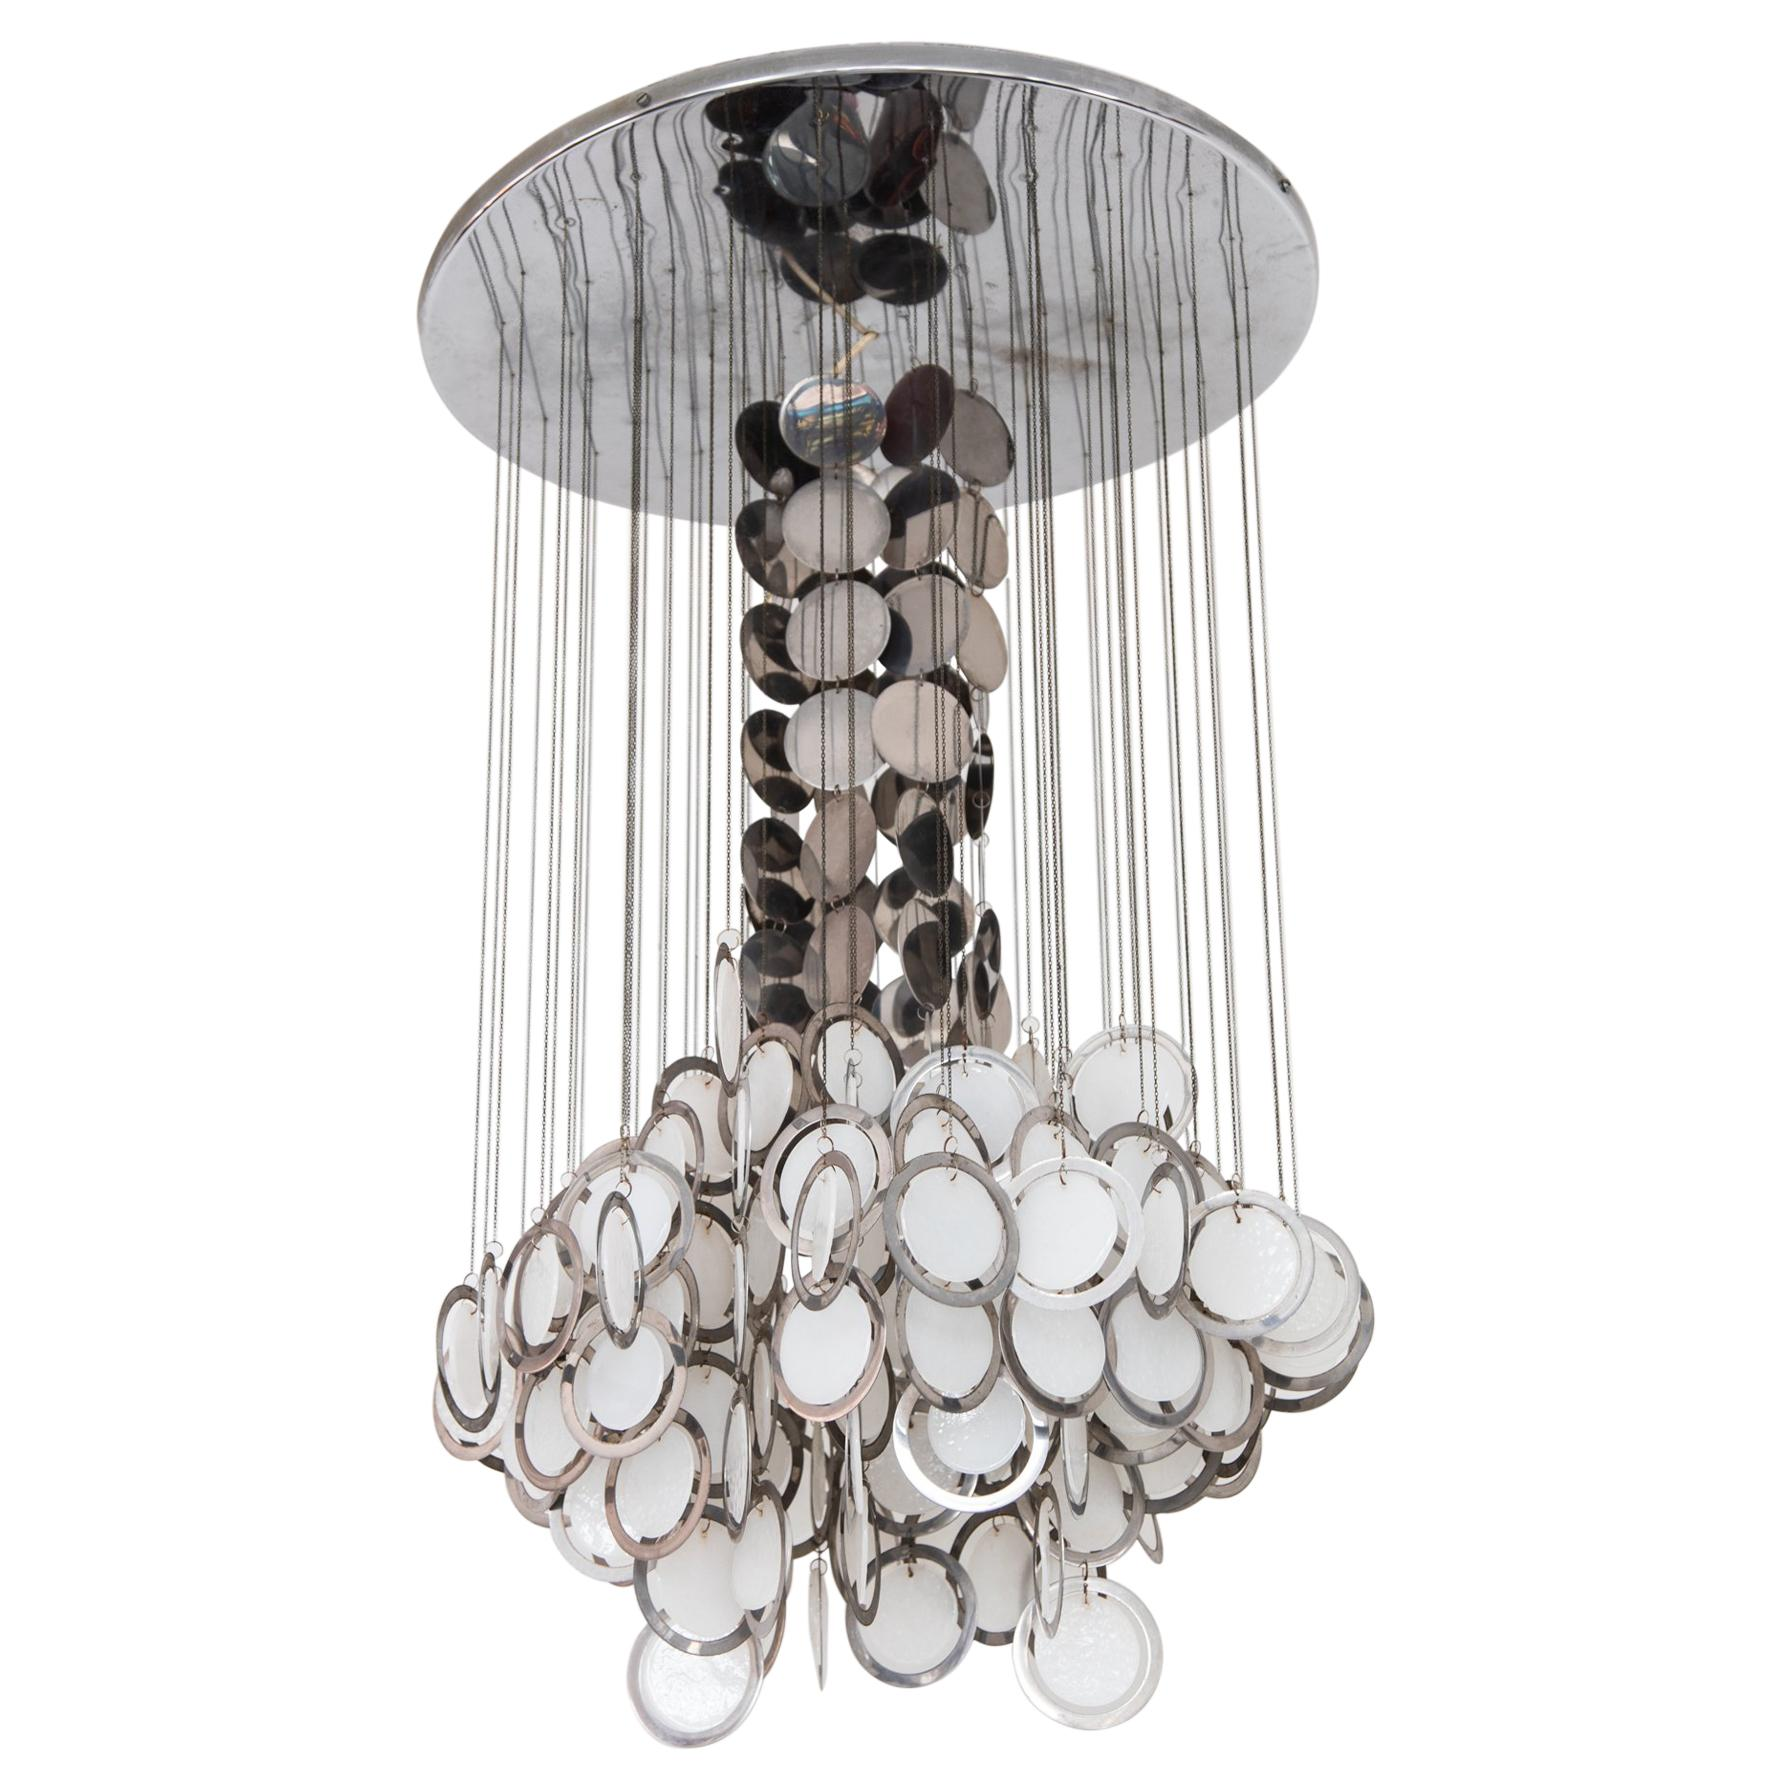 Large Vistosi Opal Glass and Chrome Discs Chandelier, Murano, Italy, 1960s